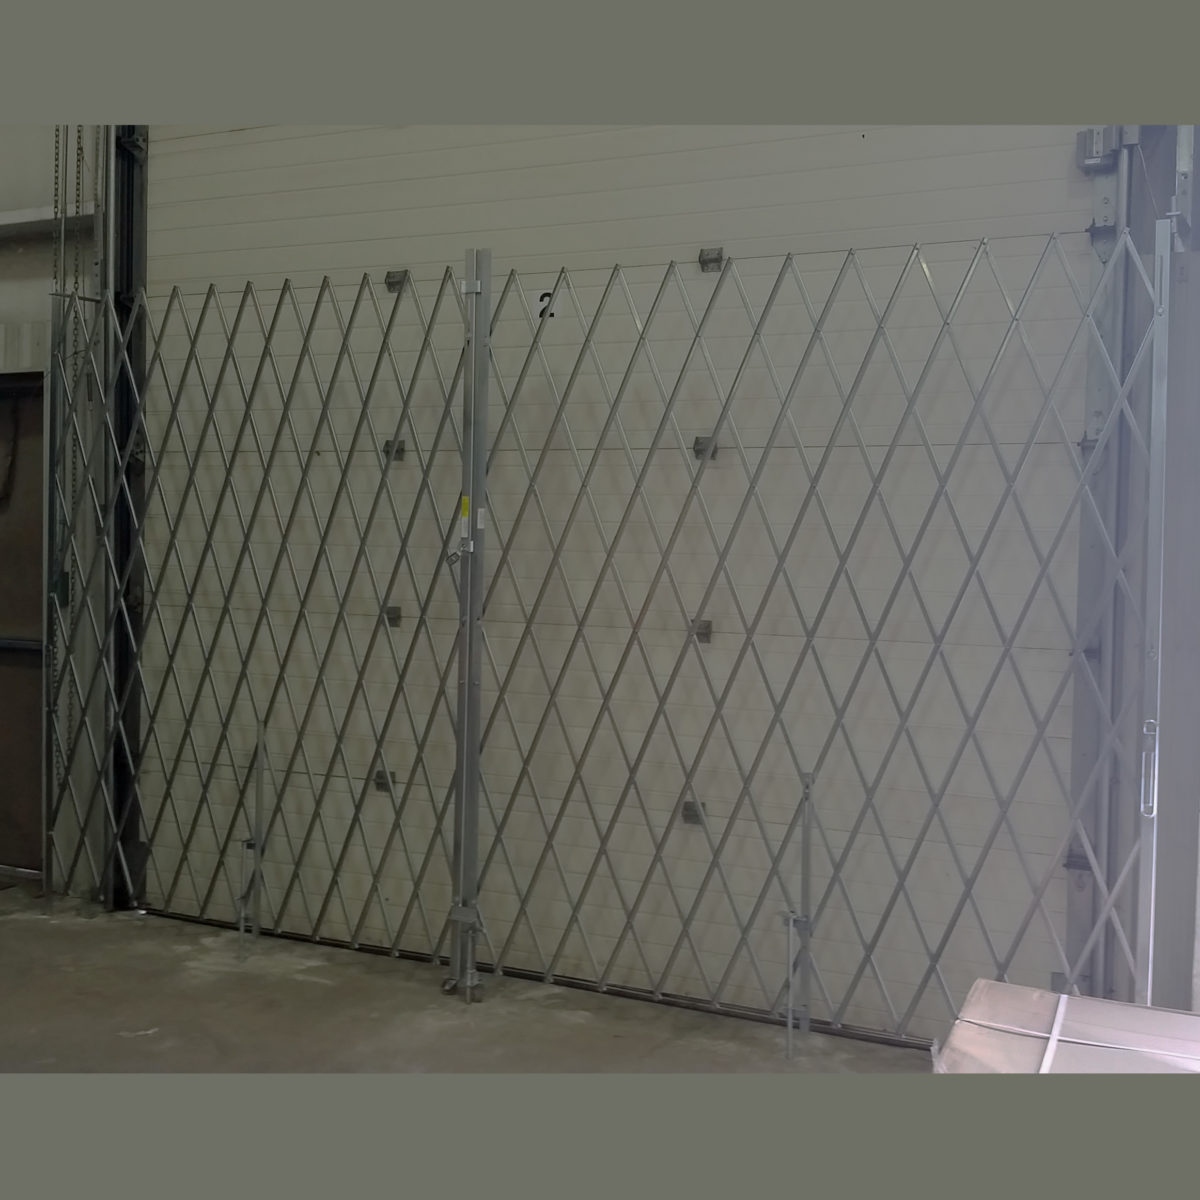 Illinois Engineered Products, IEP, Pair Security Gate, Pair, Folding Security Gates, Safe, Secure, Gate, Folding Gate, Security, Safety, Extra Heavy Duty, Xtra Heavy Duty, Heavy-Duty, Loss Prevention, entry, access, garage, receiving dock, dock door, warehouse, industrial, crash and grab, fencing, fence, Storefront, Store front, Hybrid, Hybrid Gate, Window Gate, Top Track, Bottom Track, Bottom Guide, scissor gate, lazy tong, lazy-tong, Store Security, shop security, face-mount, facemount, roll-down, roll-up, in-jamb, in jam, in door, doorway, install